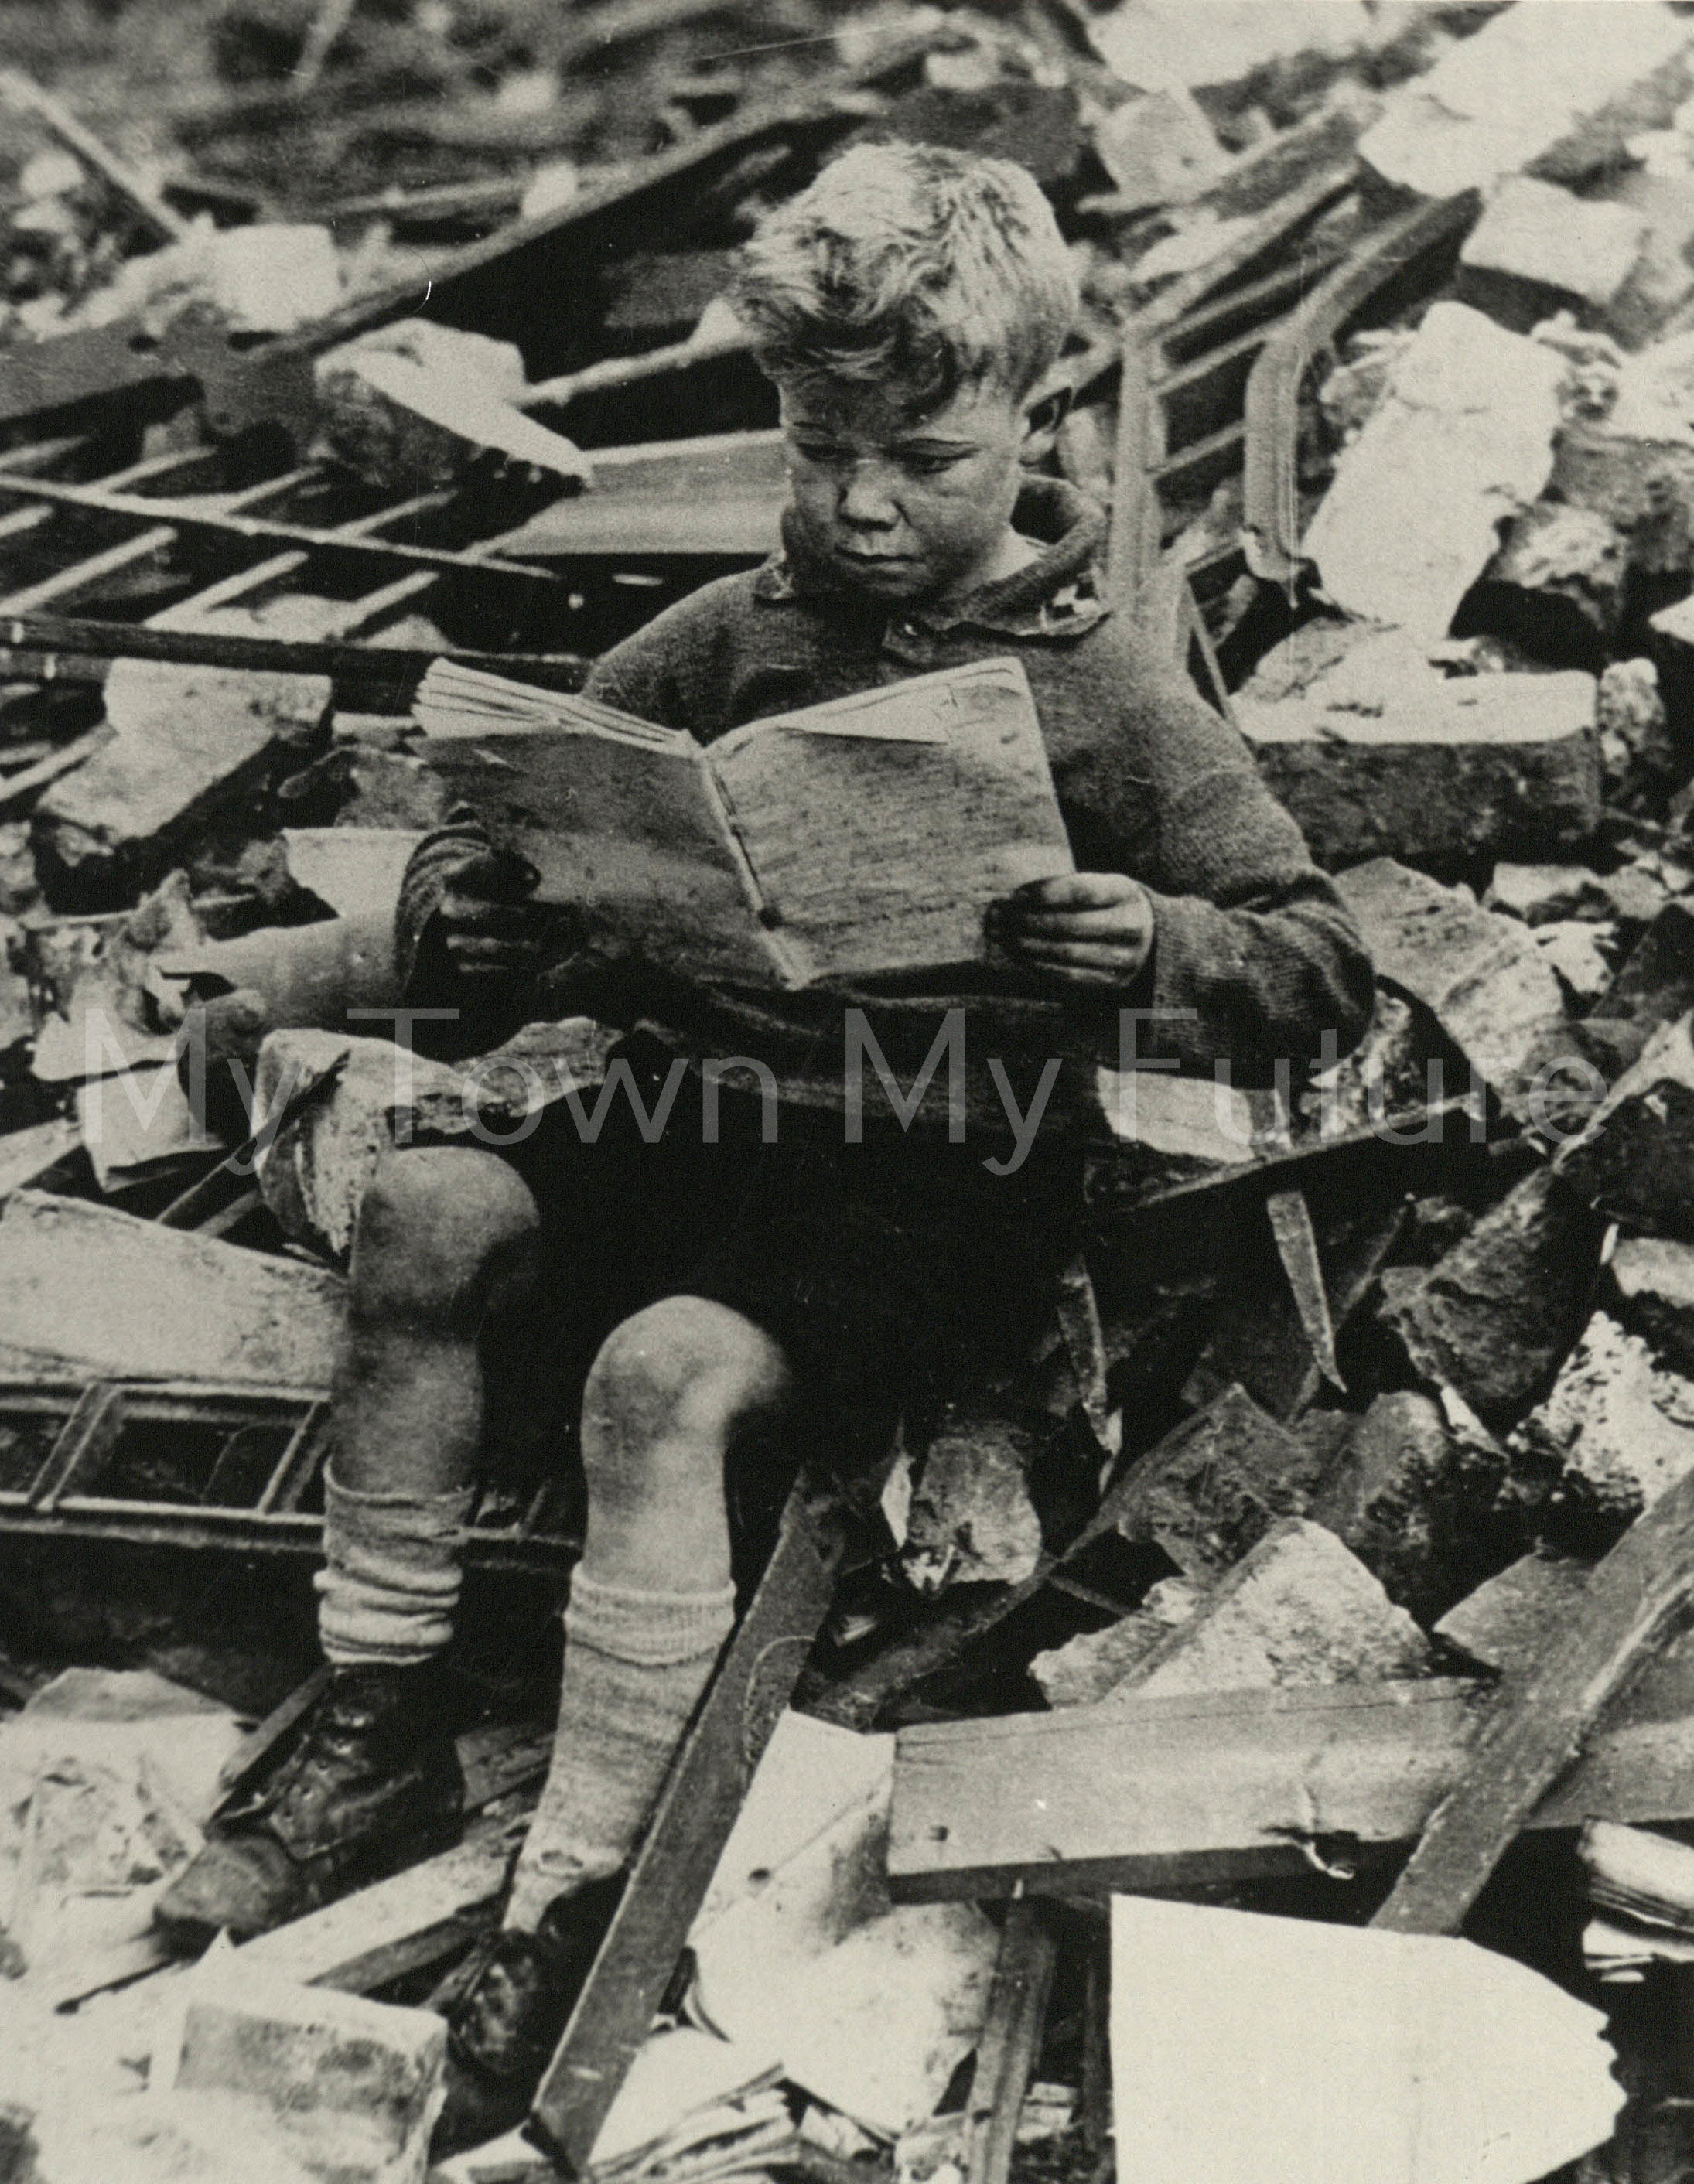 Desmond Taylor 8yr sitting in the ruins of St Pauls School Newport Rd